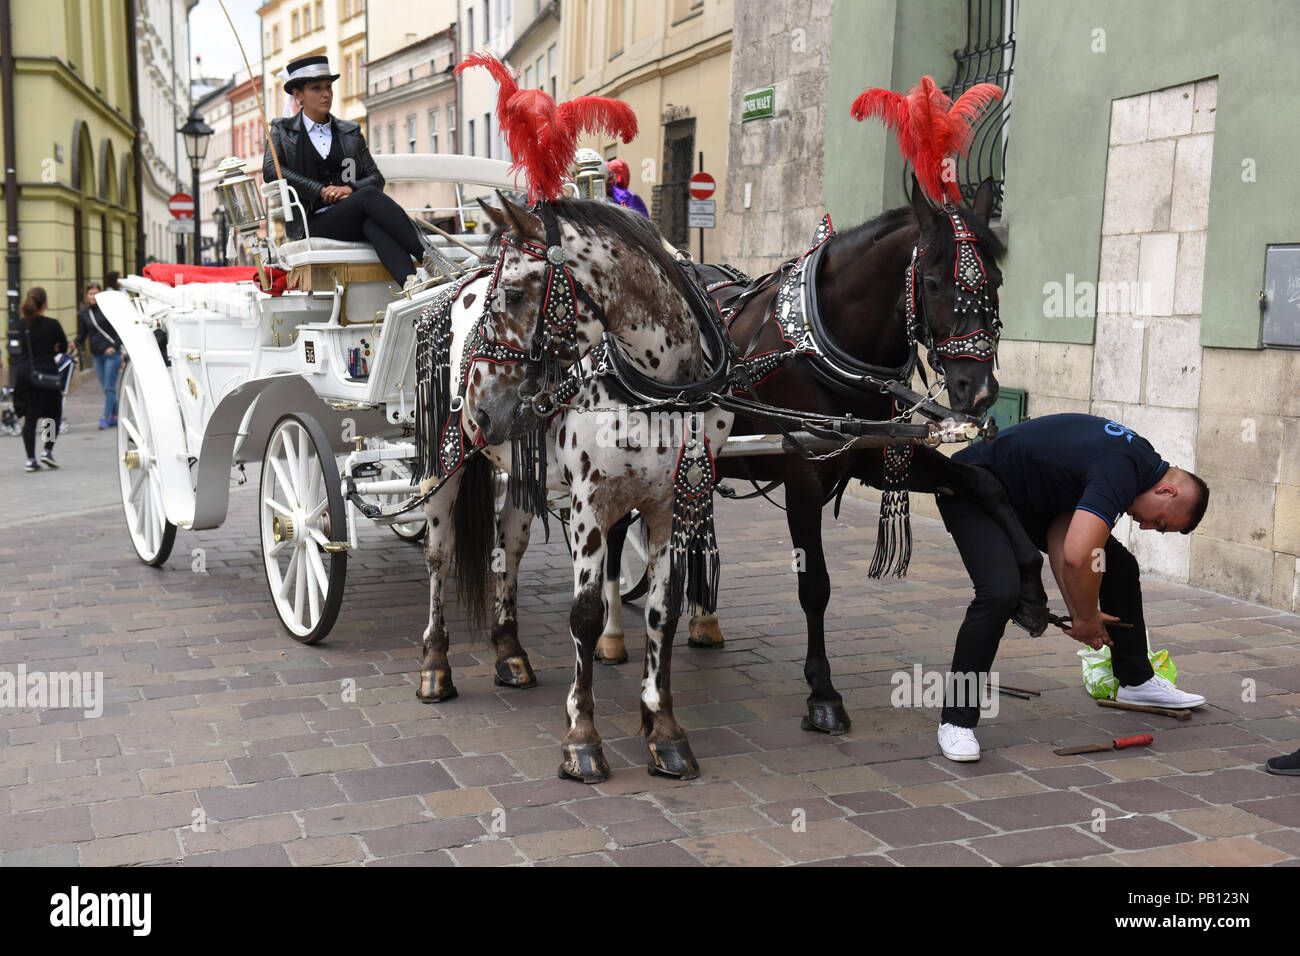 Polisk blacksmith changing reparing horses show Horse drawn carriage in Krakow Poland - Stock Image